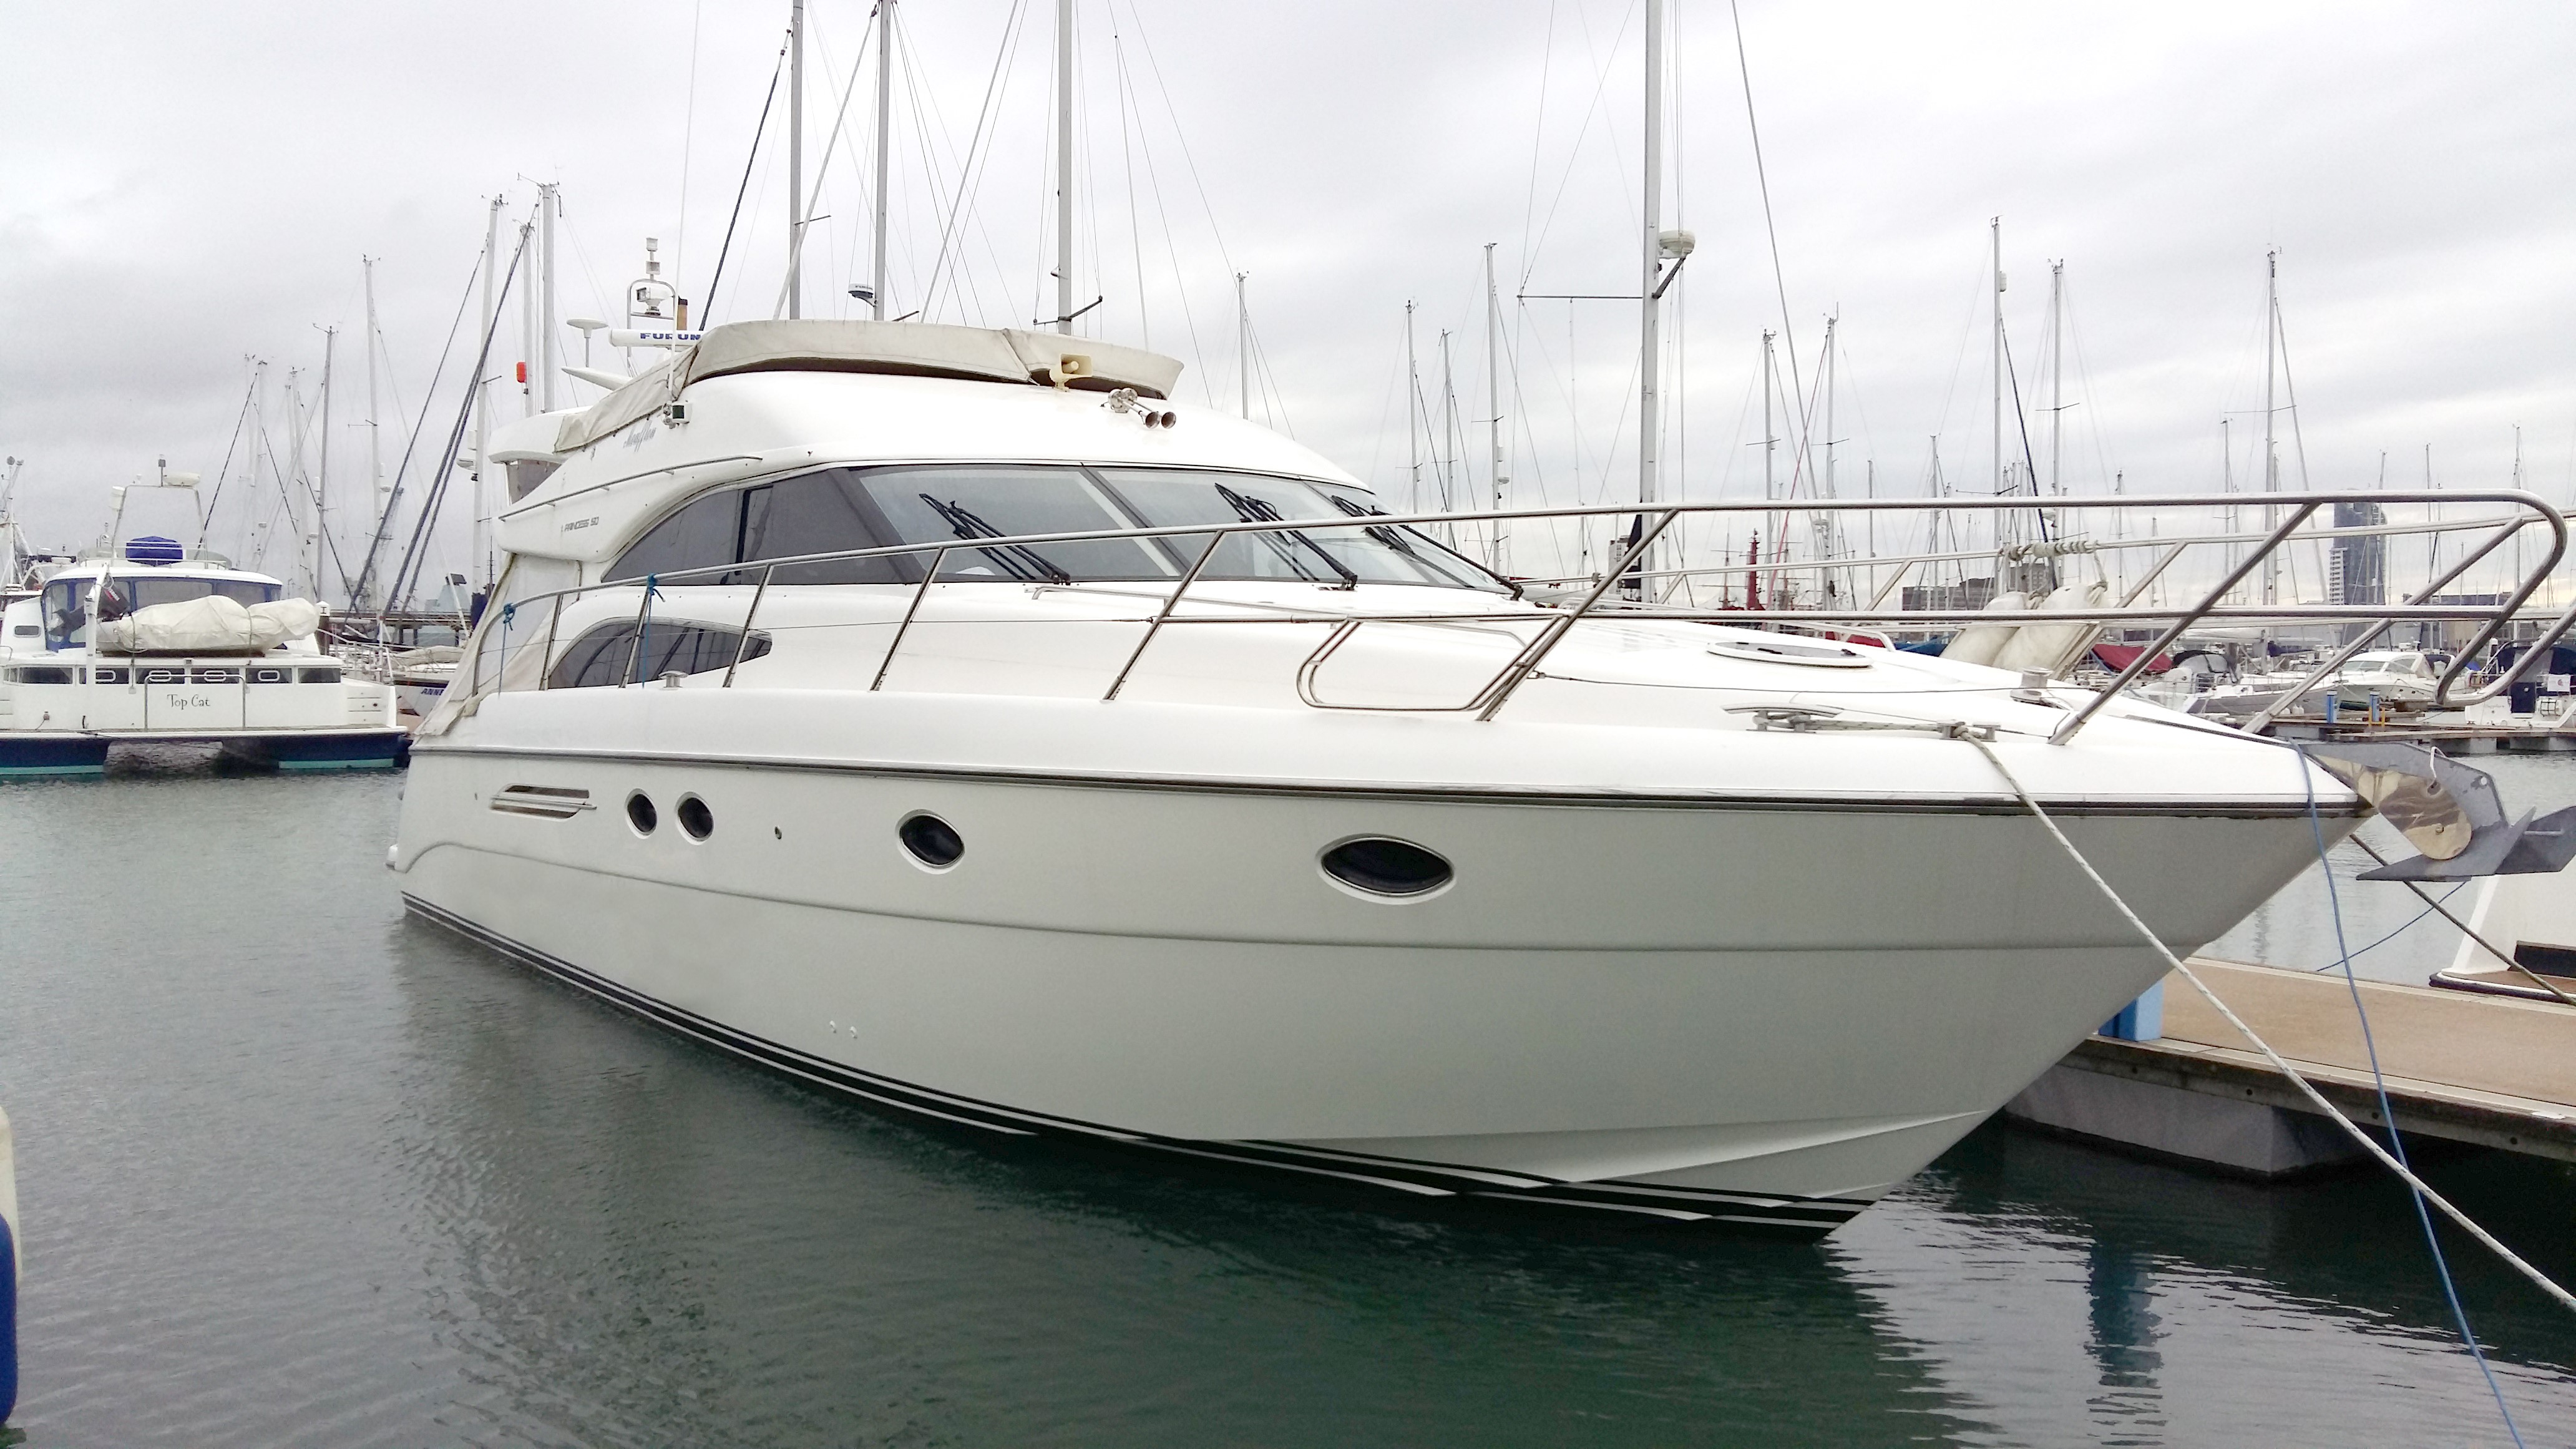 Princess 50 Princess 50 hull profile